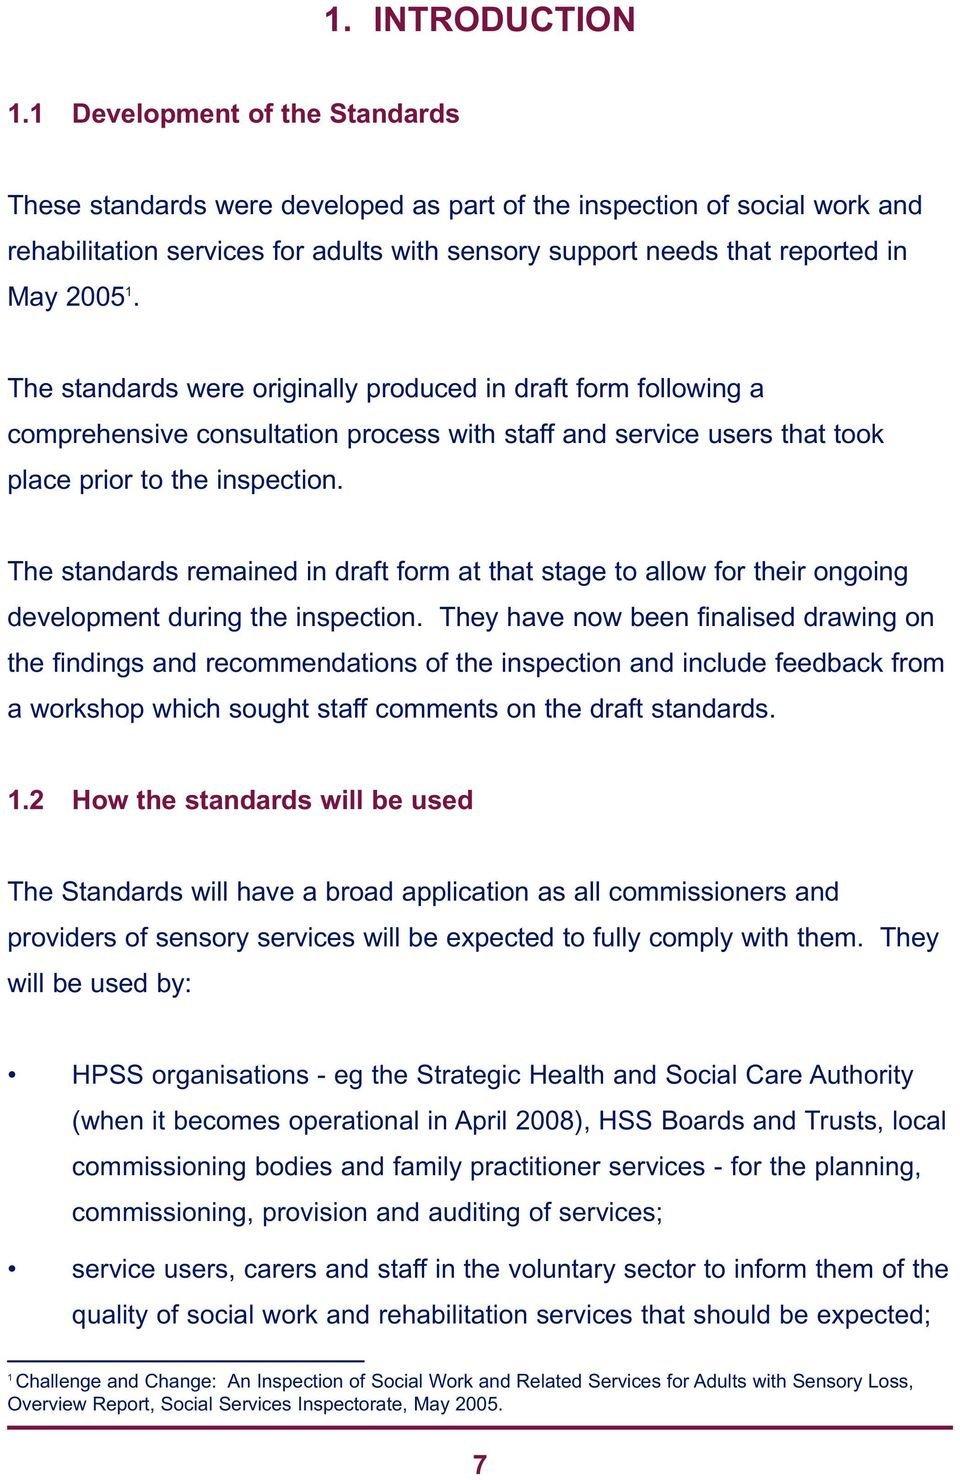 The standards were originally produced in draft form following a comprehensive consultation process with staff and service users that took place prior to the inspection.